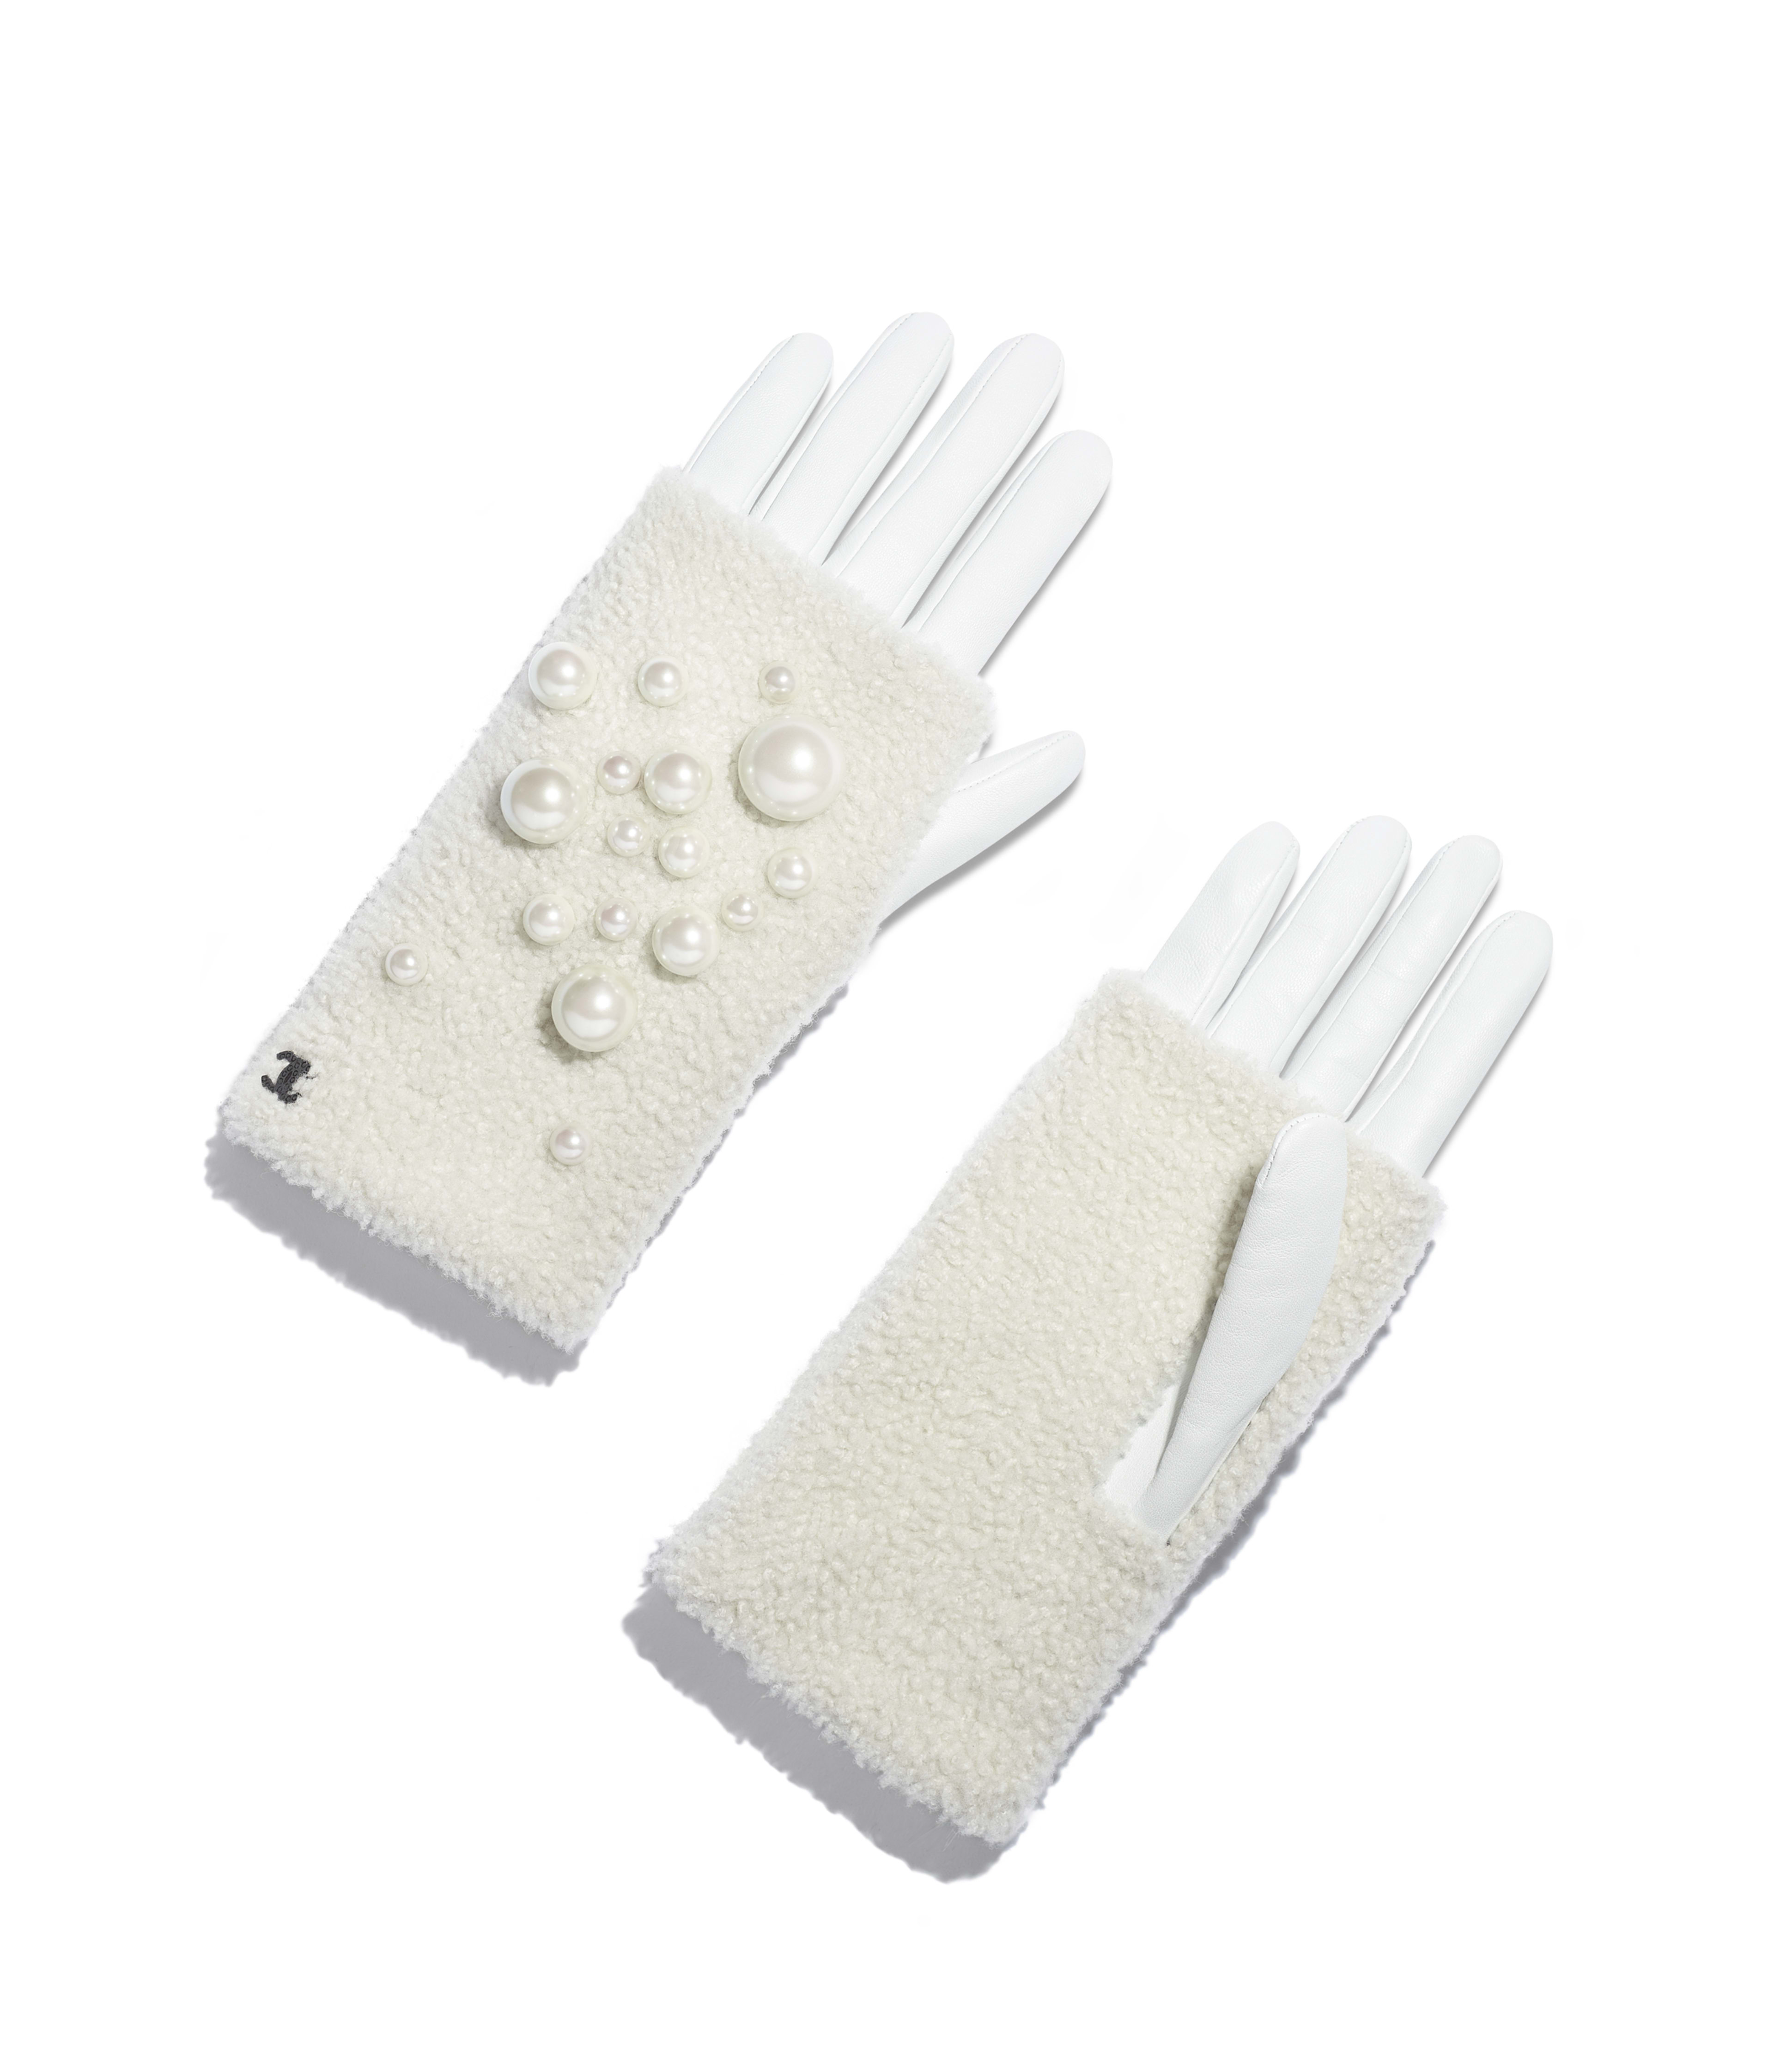 Gloves - Other accessories | CHANEL